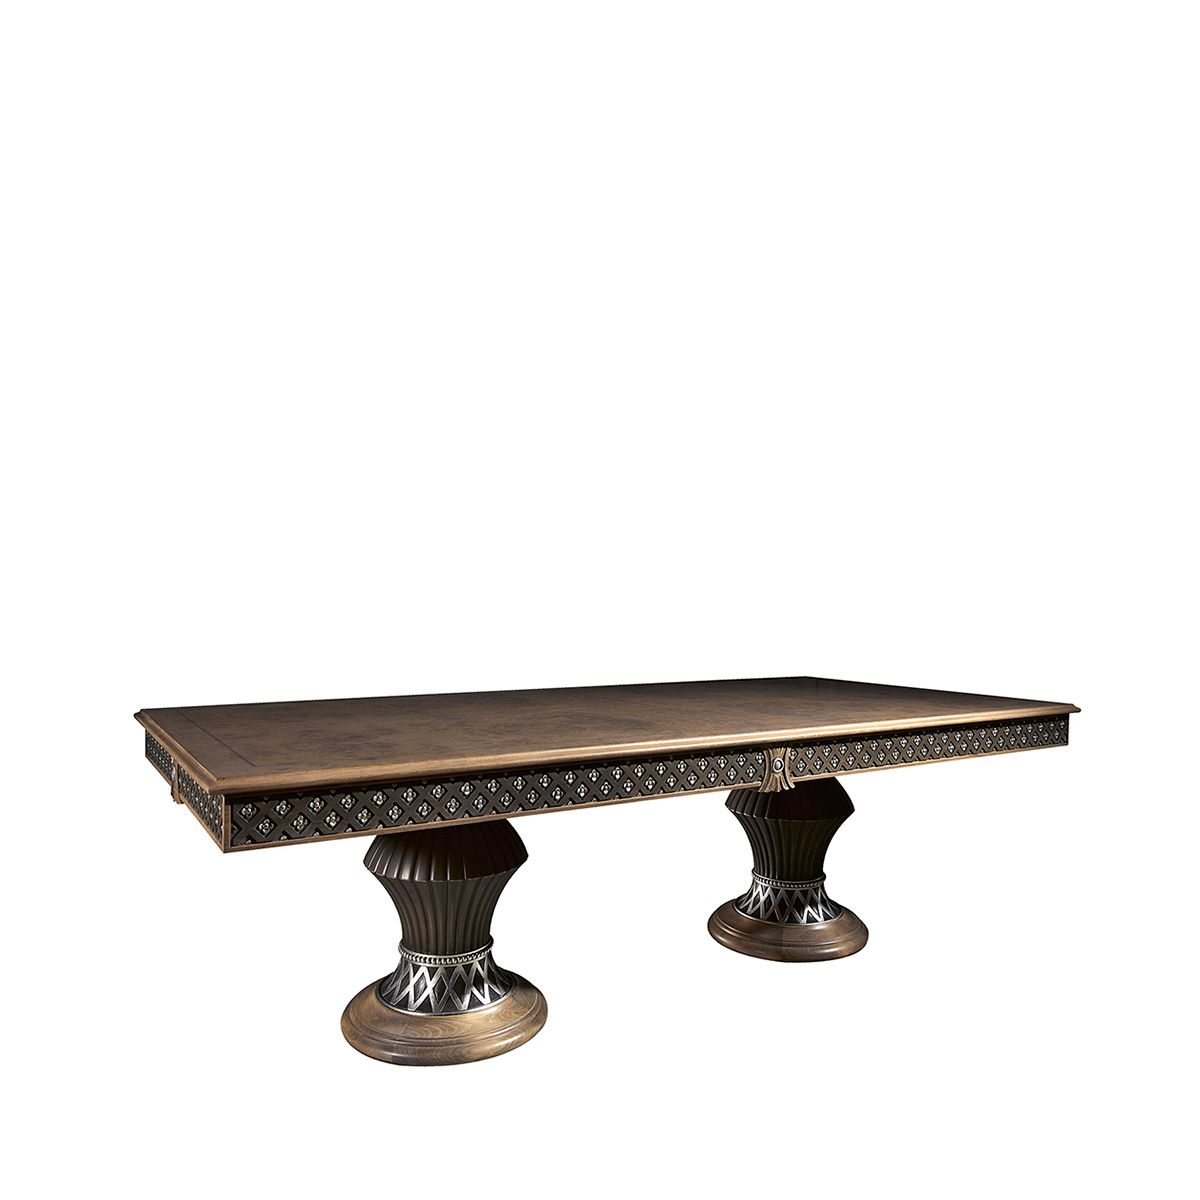 Coleccion Alexandra -Dining Table -  Luxury and Exclusive Design Furniture